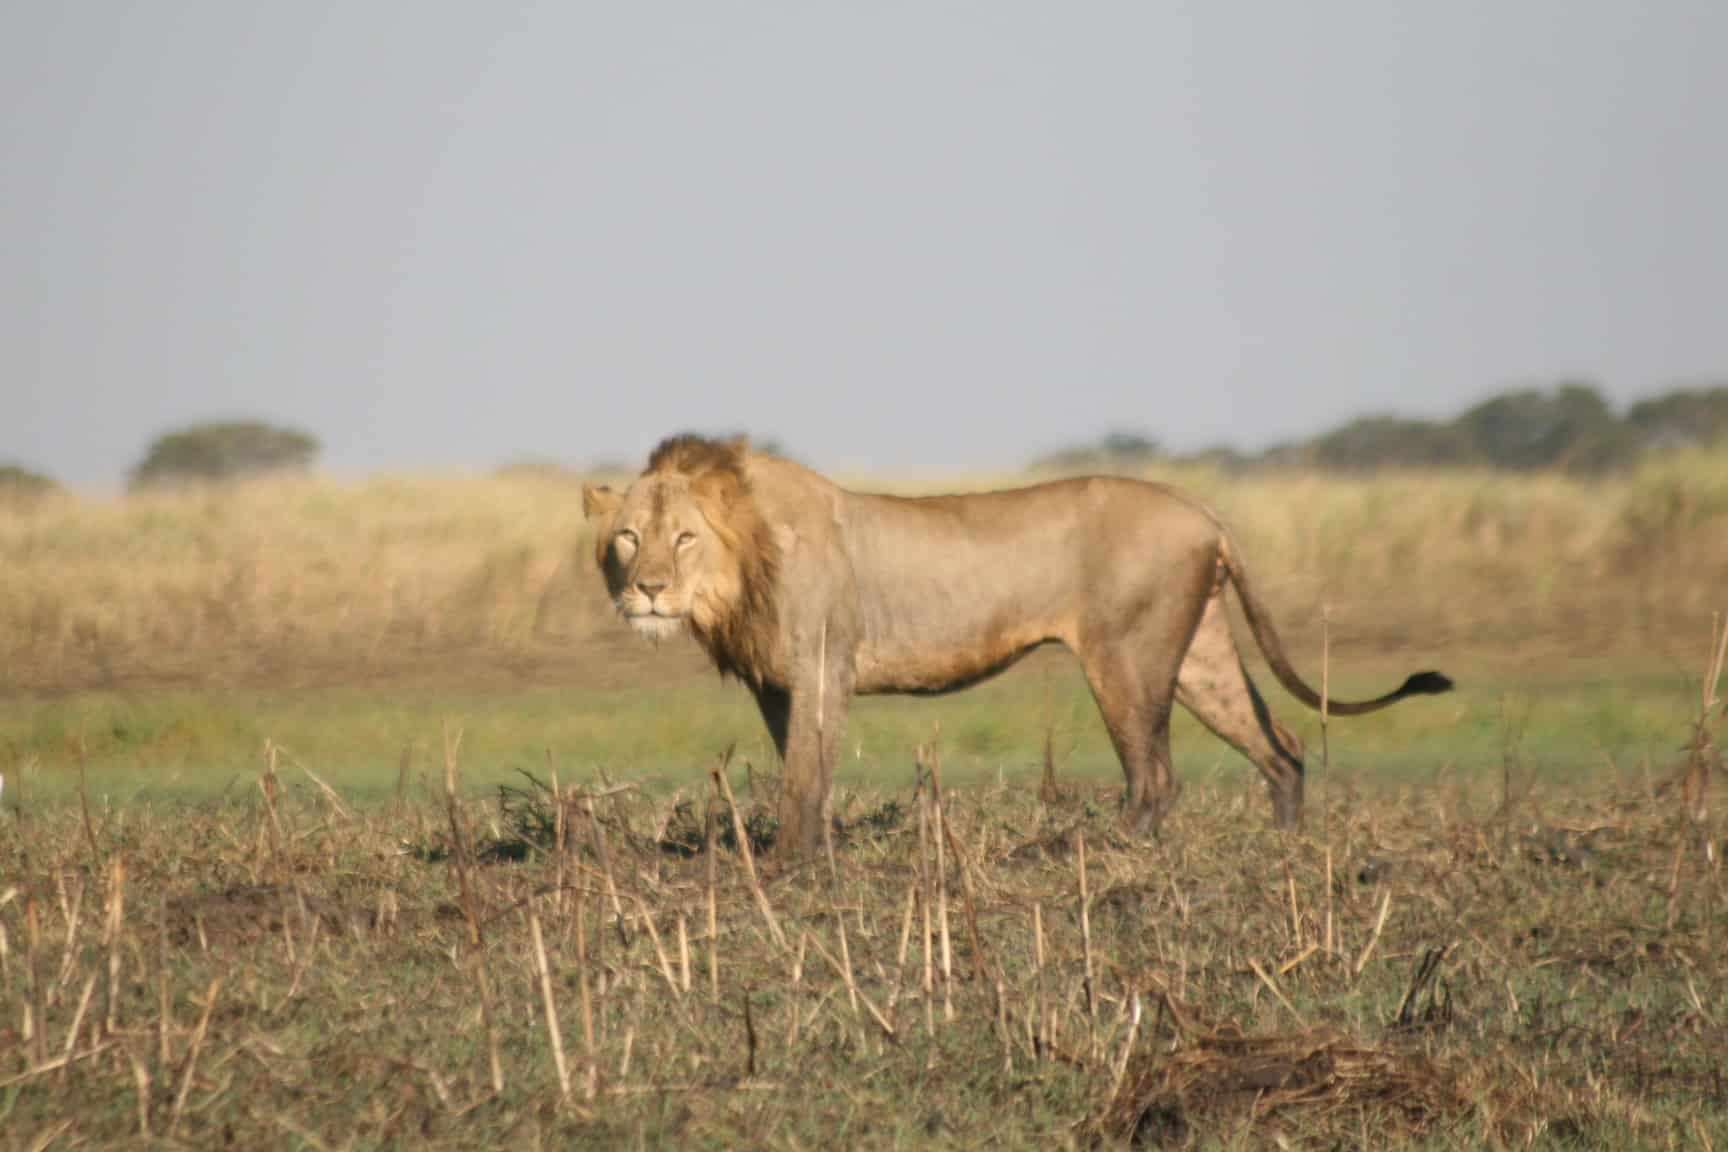 Battle Royal for Lion Dominance in the Busanga Plains | African Safaris with Taga